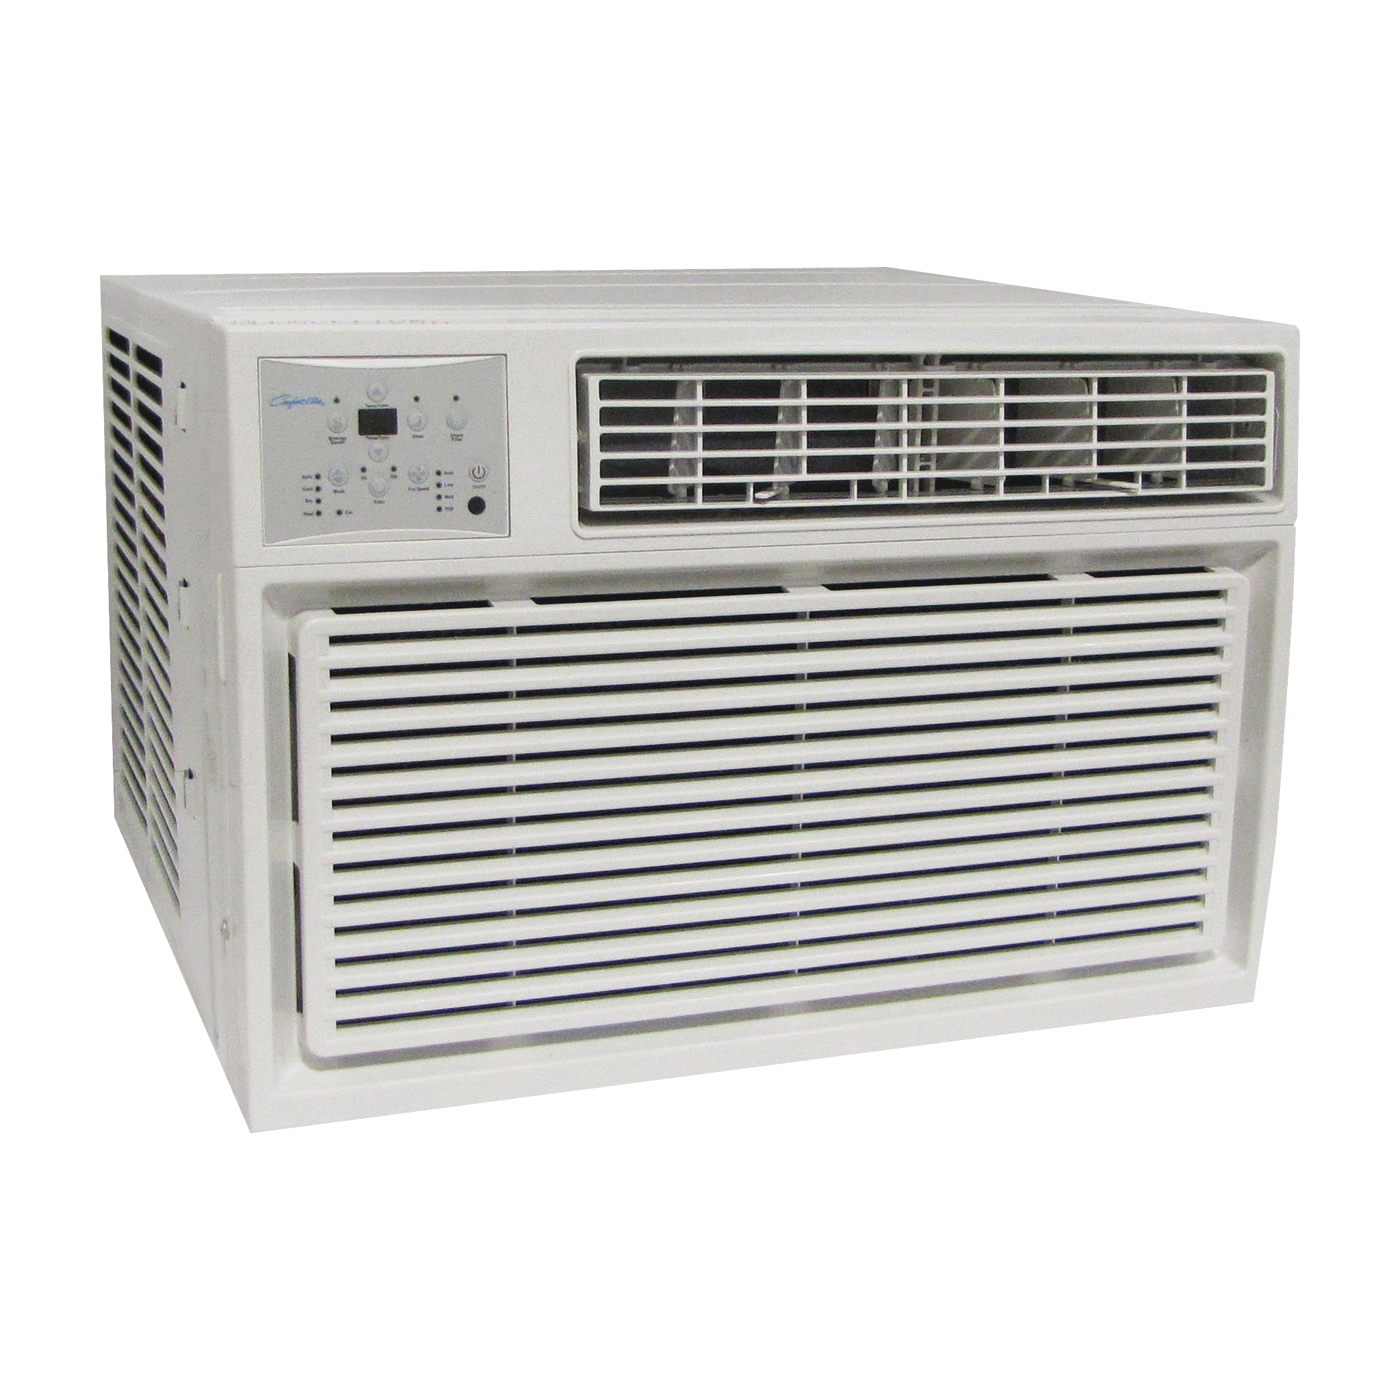 Picture of Comfort-Aire REG-183M Room Air Conditioner, 208/230 V, 60 Hz, 18,200, 18,500 Btu/hr Cooling, 10.7 EER, 60/57/54 dB